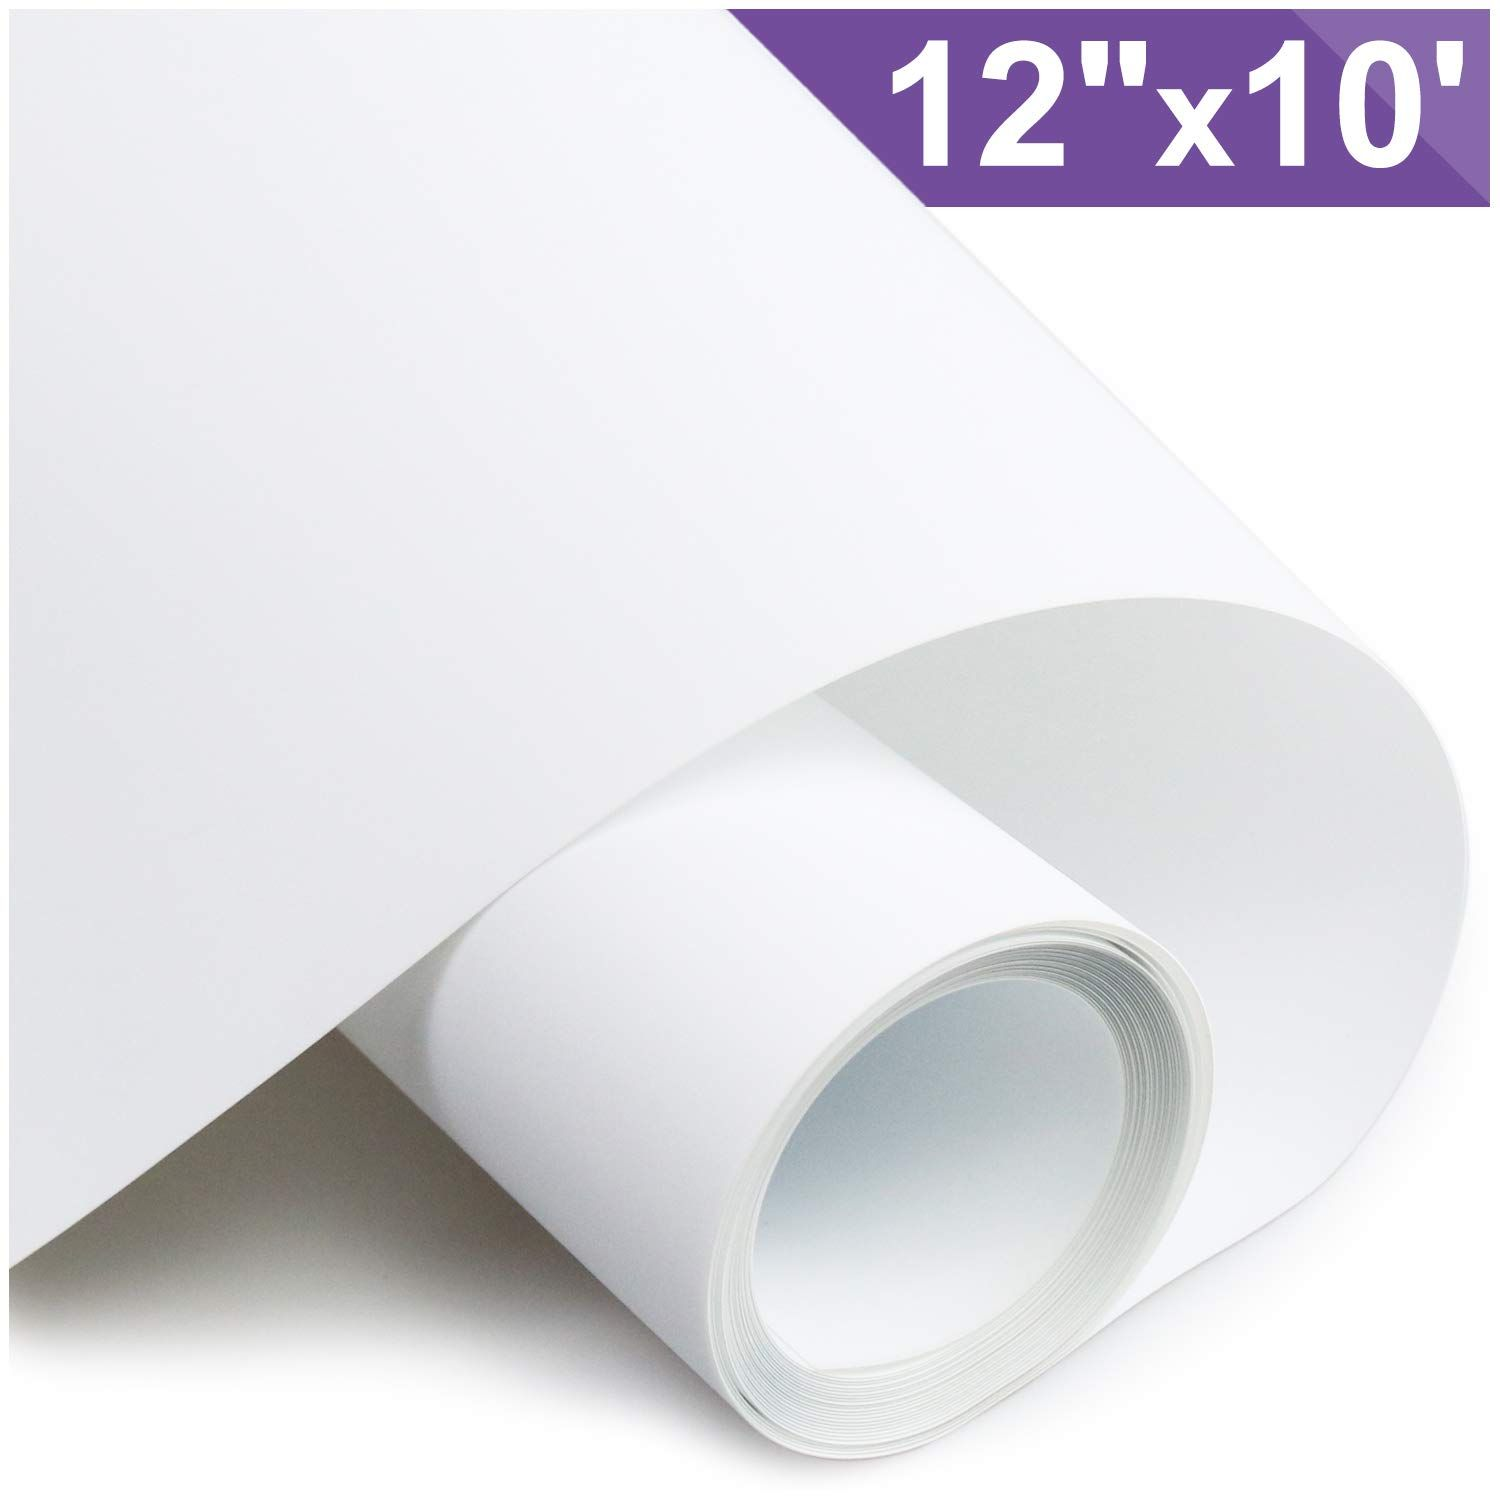 Arhiky Heat Transfer Vinyl Htv For T Shirts 12 Inches By 10 Feet Rolls White Waterfilter Ledringligh Heat Transfer Vinyl Heat Press Transfers Heat Transfer